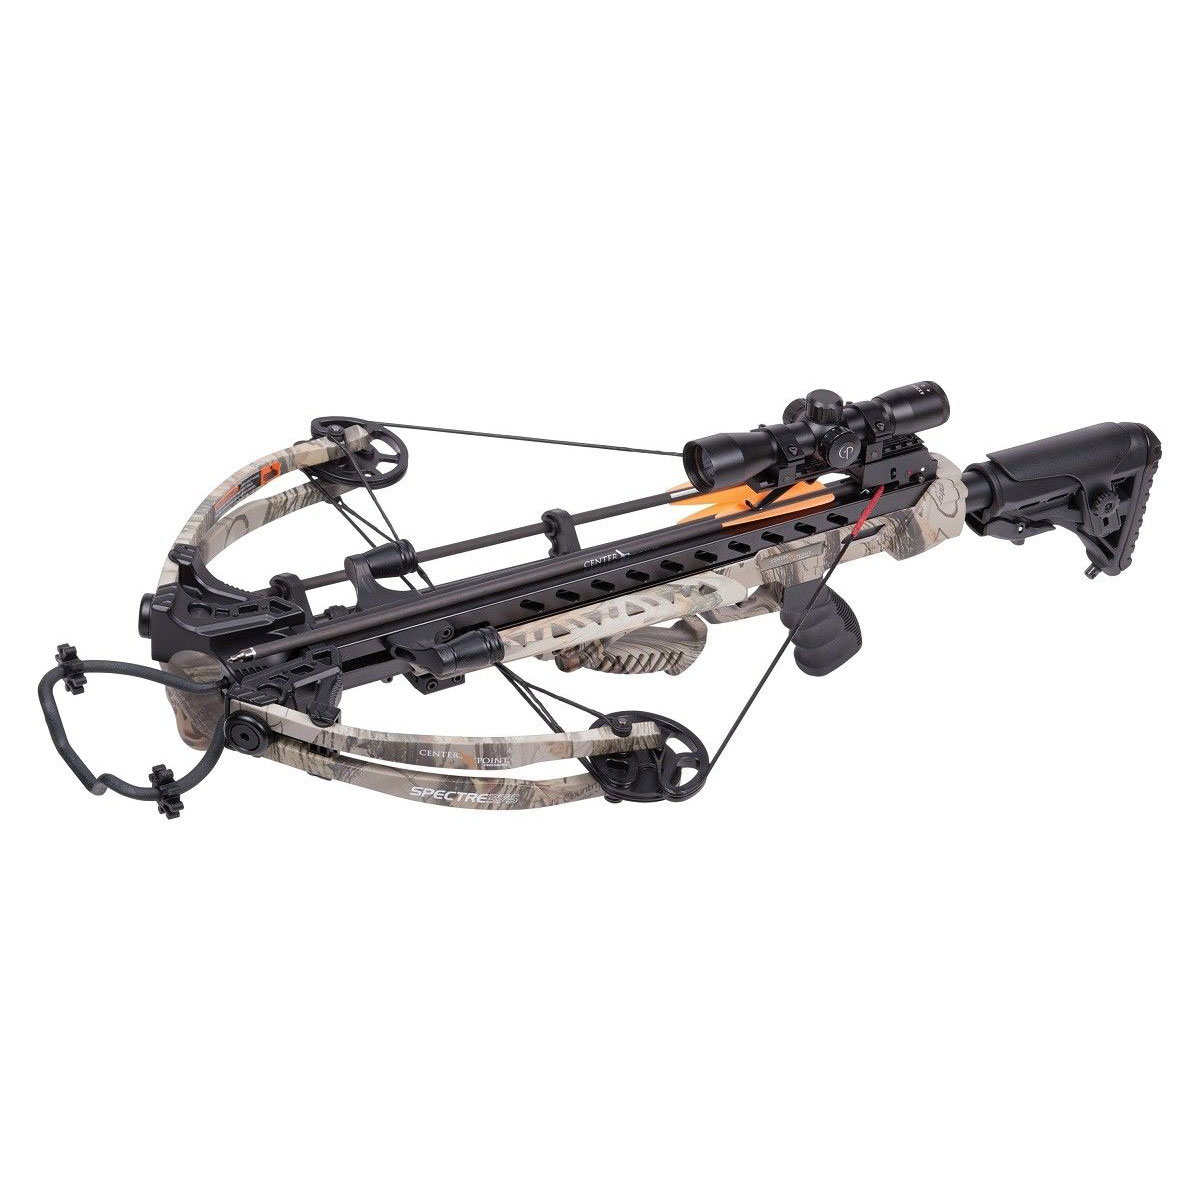 CENTERPOINT SPECTRE 375 COMPOUND CROSSBOW PACKAGE main photo.